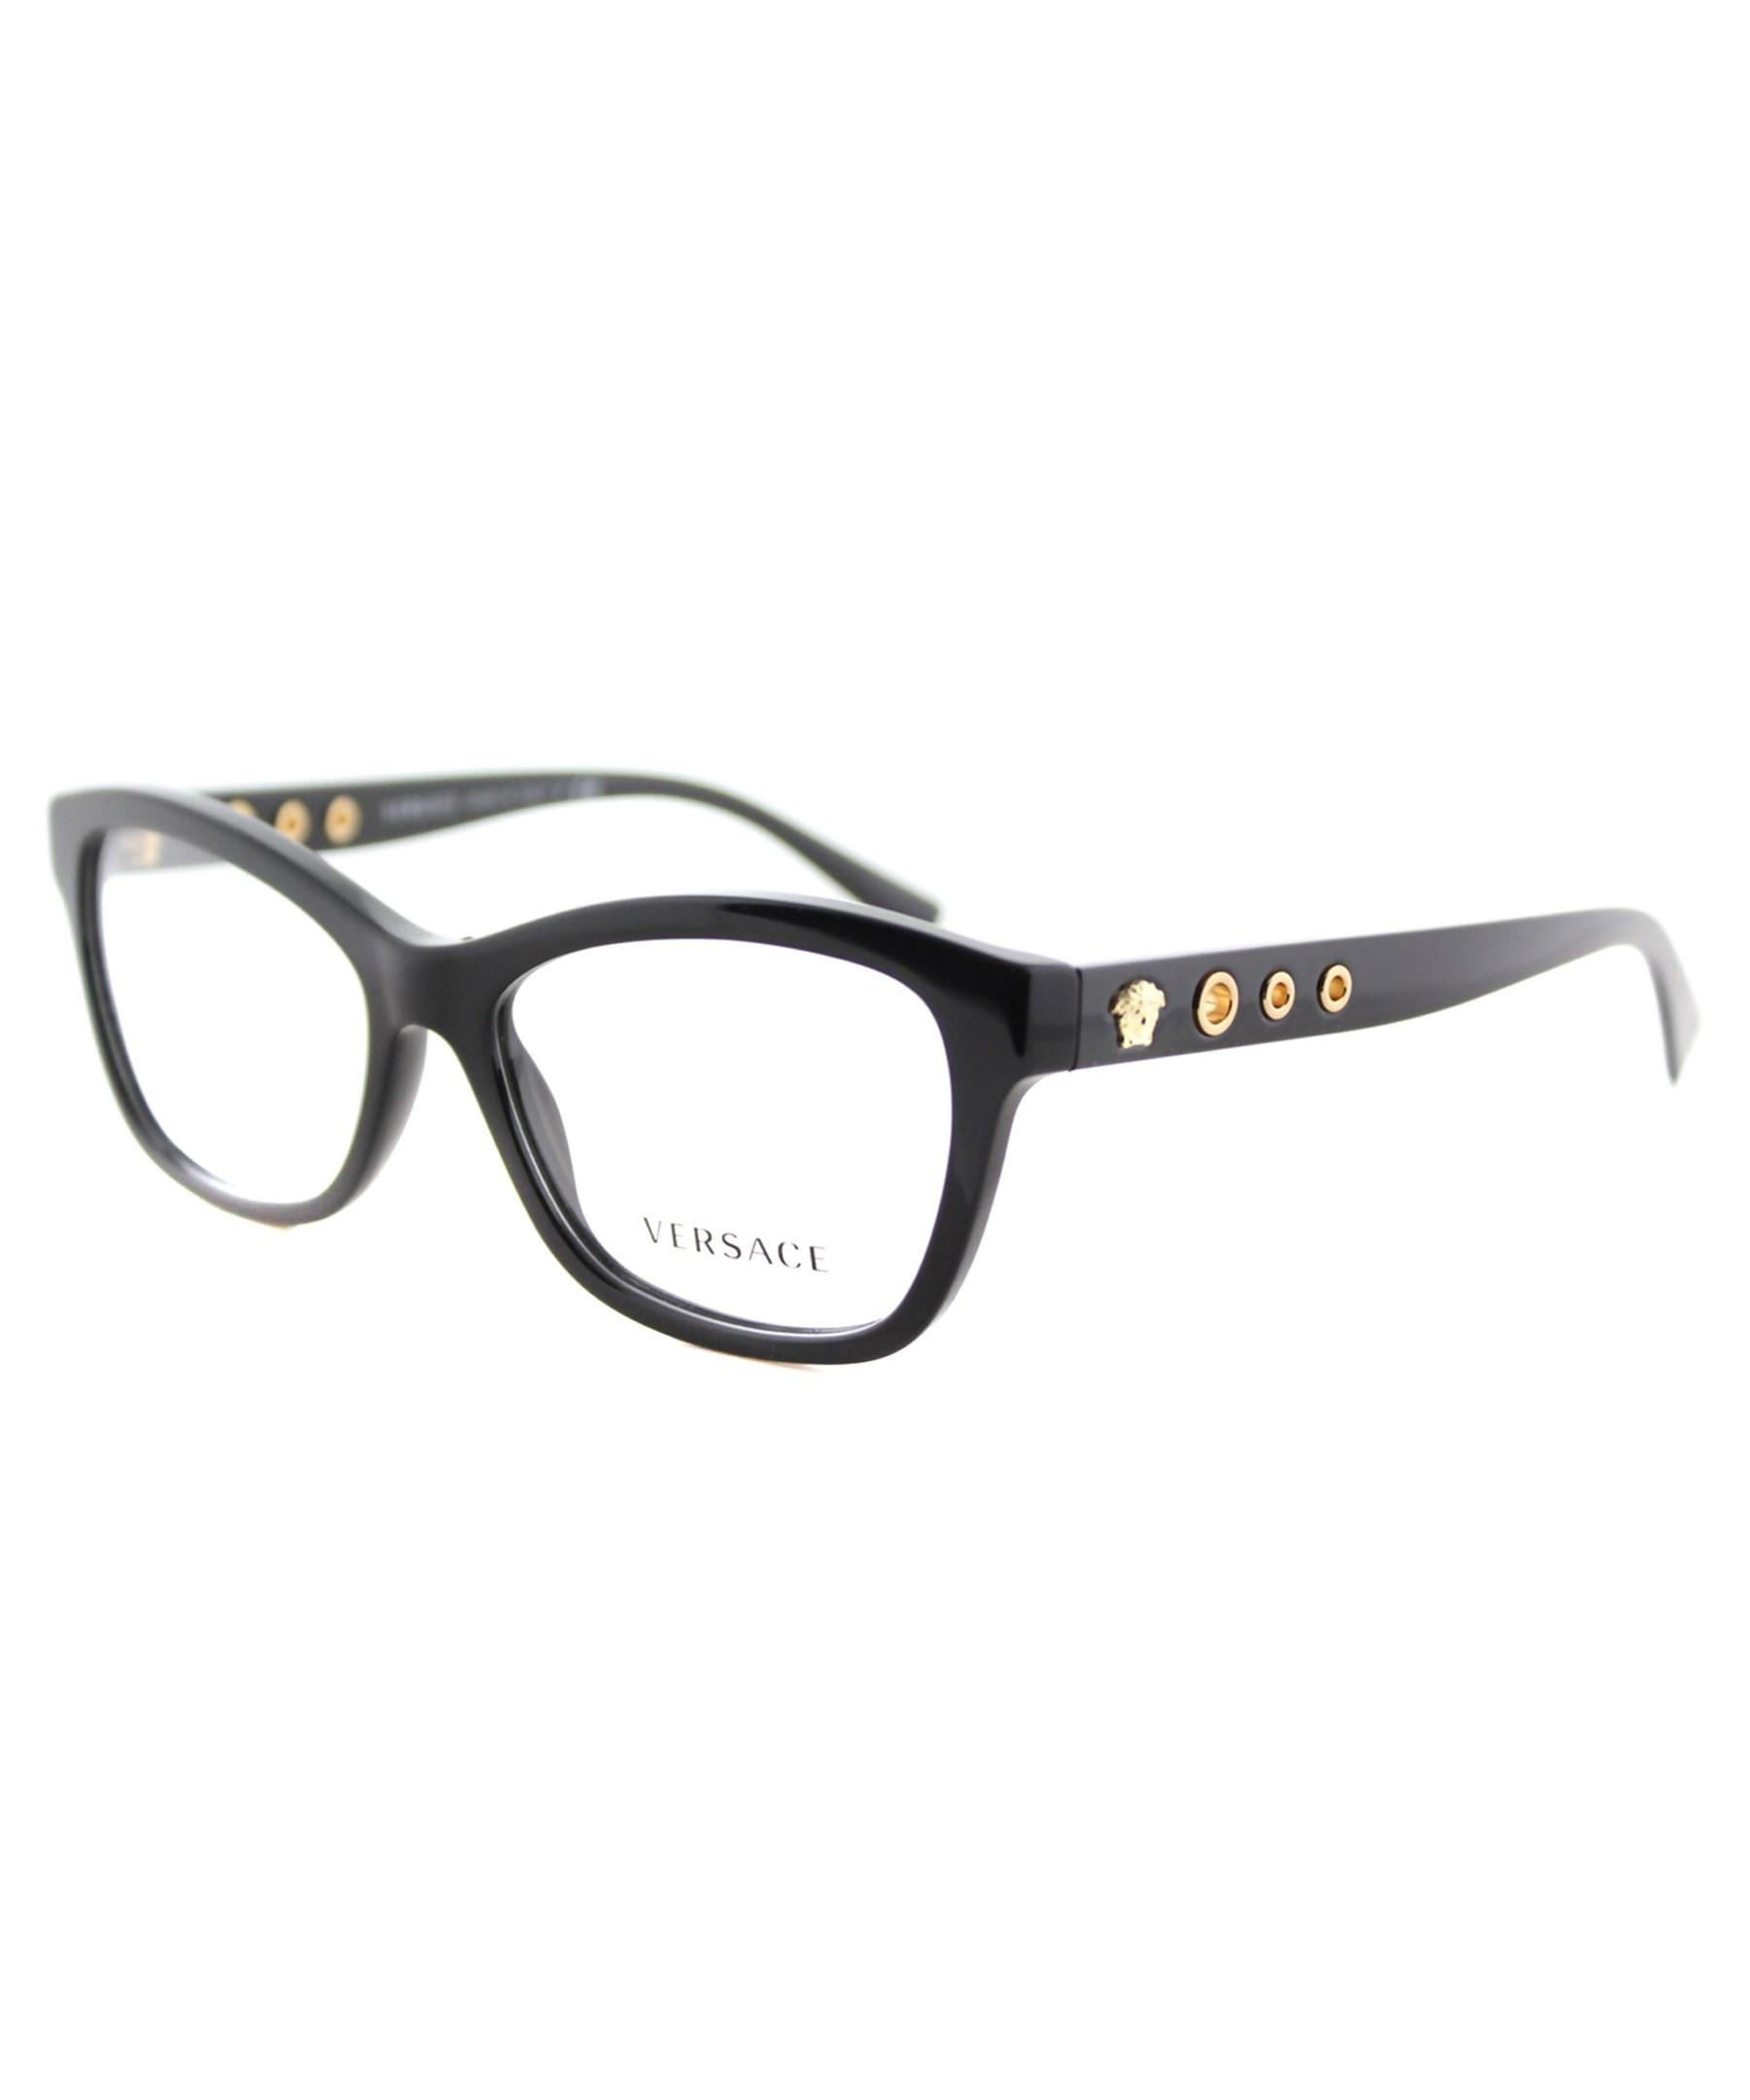 Versace Glasses Frames Cat Eye : Versace Cat-eye Plastic Eyeglasses in Black Lyst